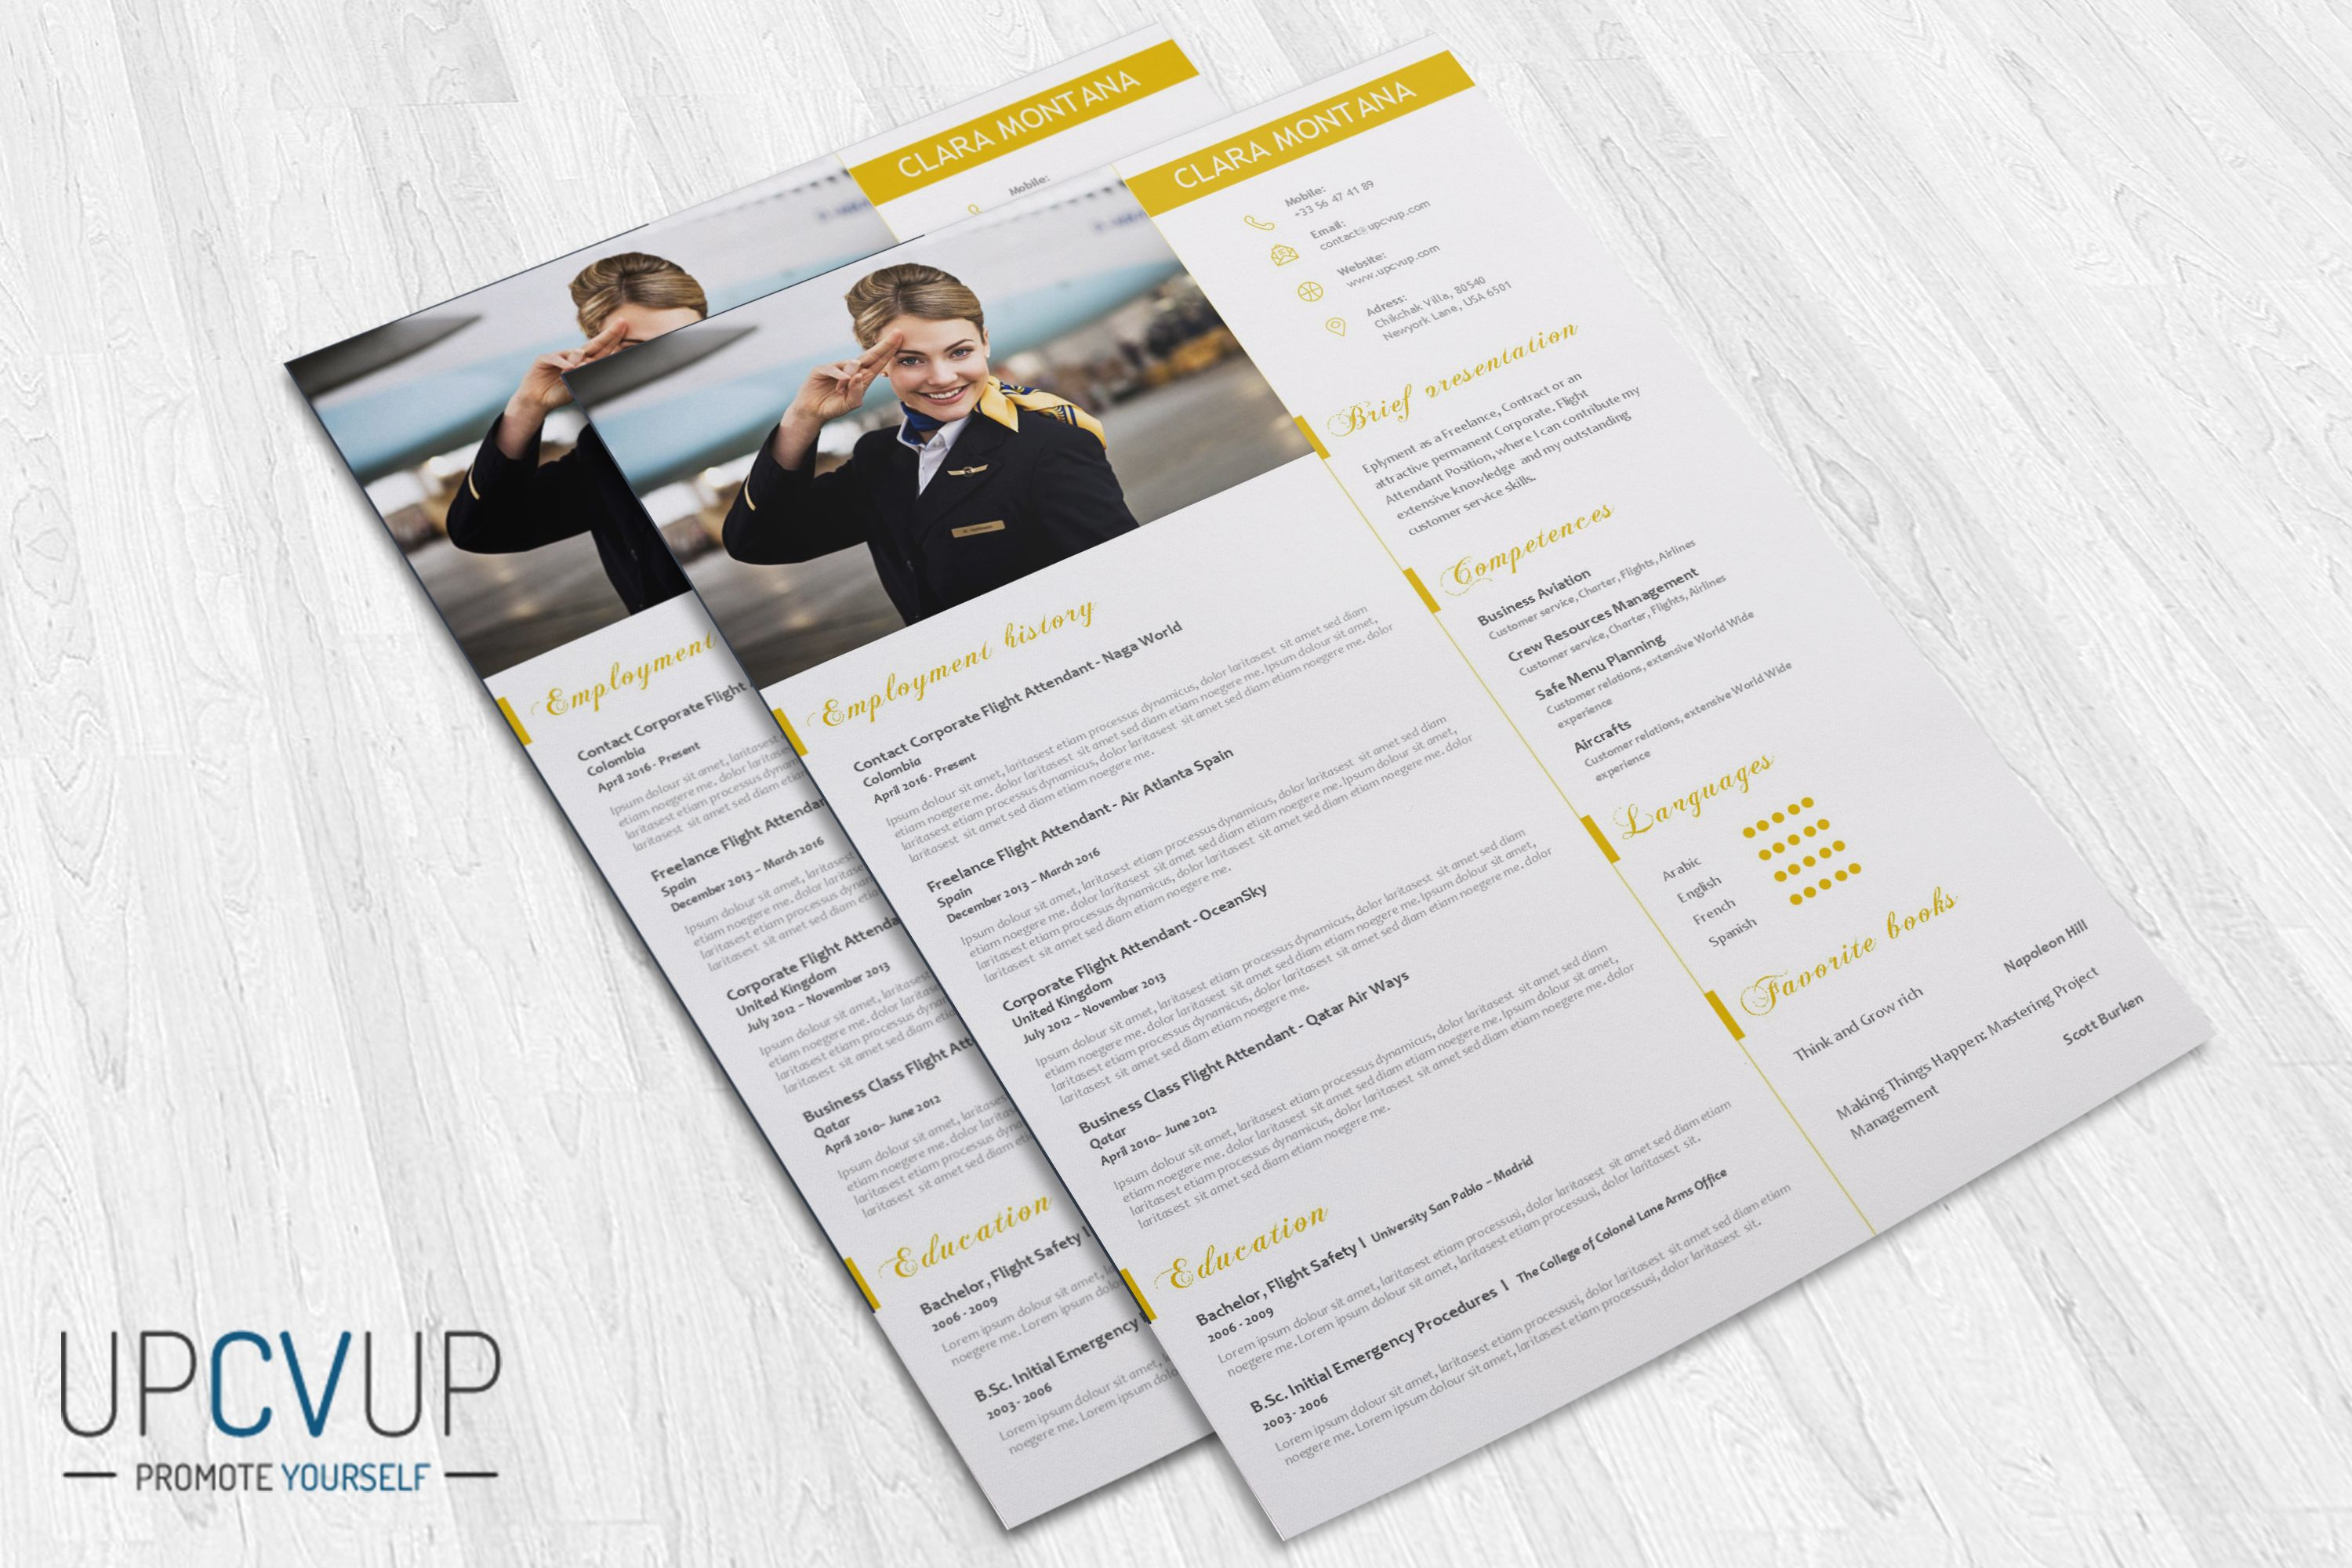 cabin crew  u00a7 flight attendant modern resume cv template   cover letter design for  u2026